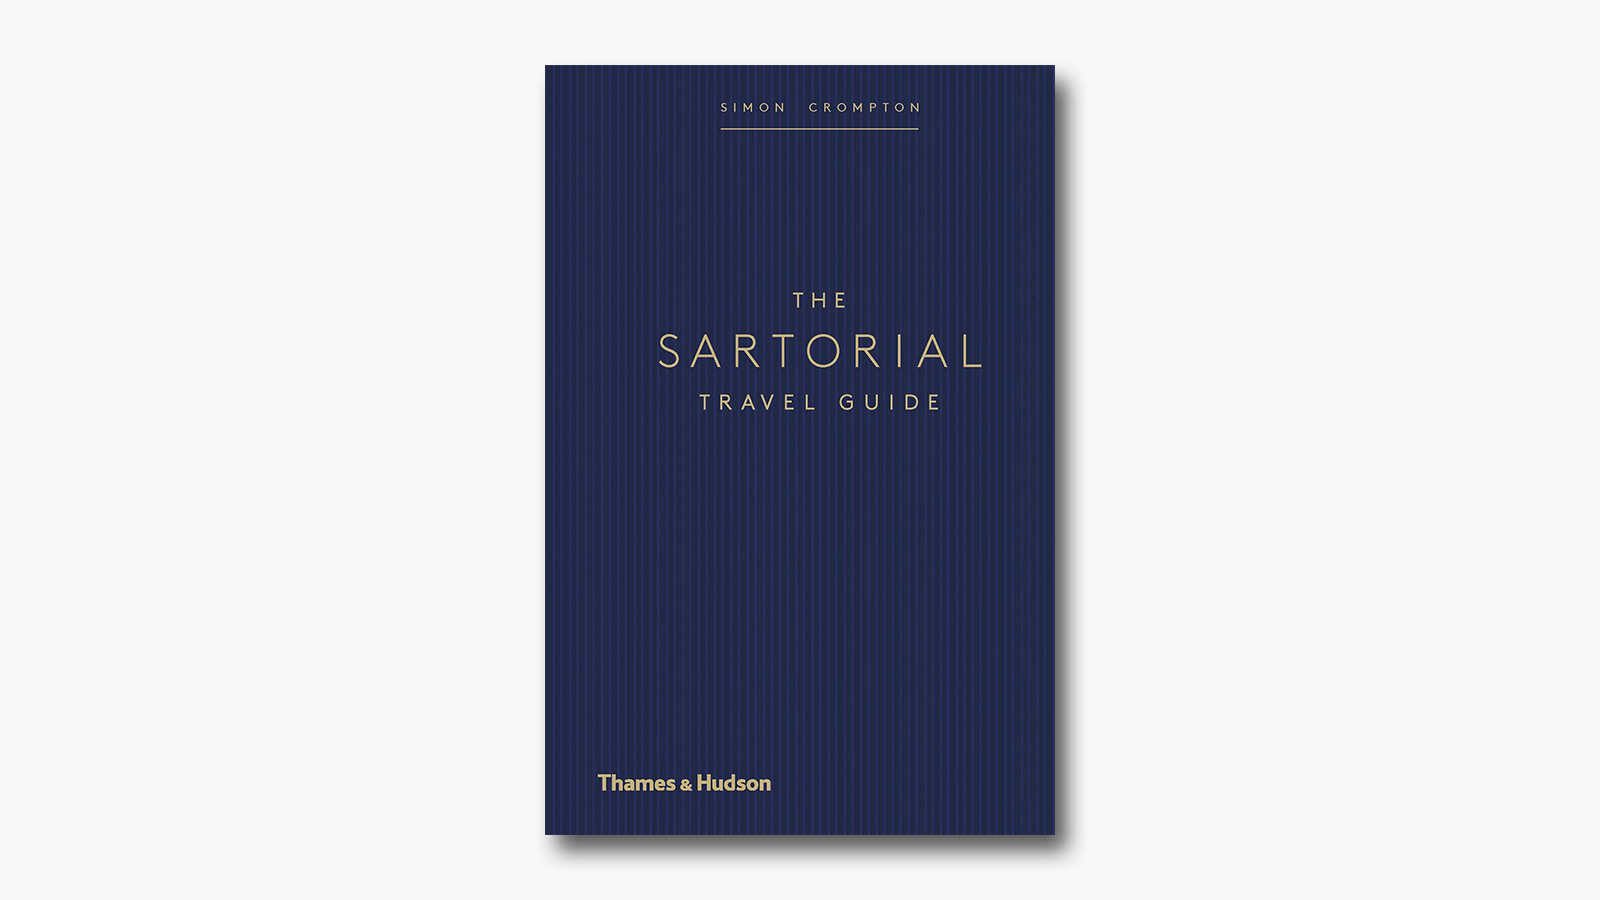 'The Sartorial Travel Guide' by Simon Crompton